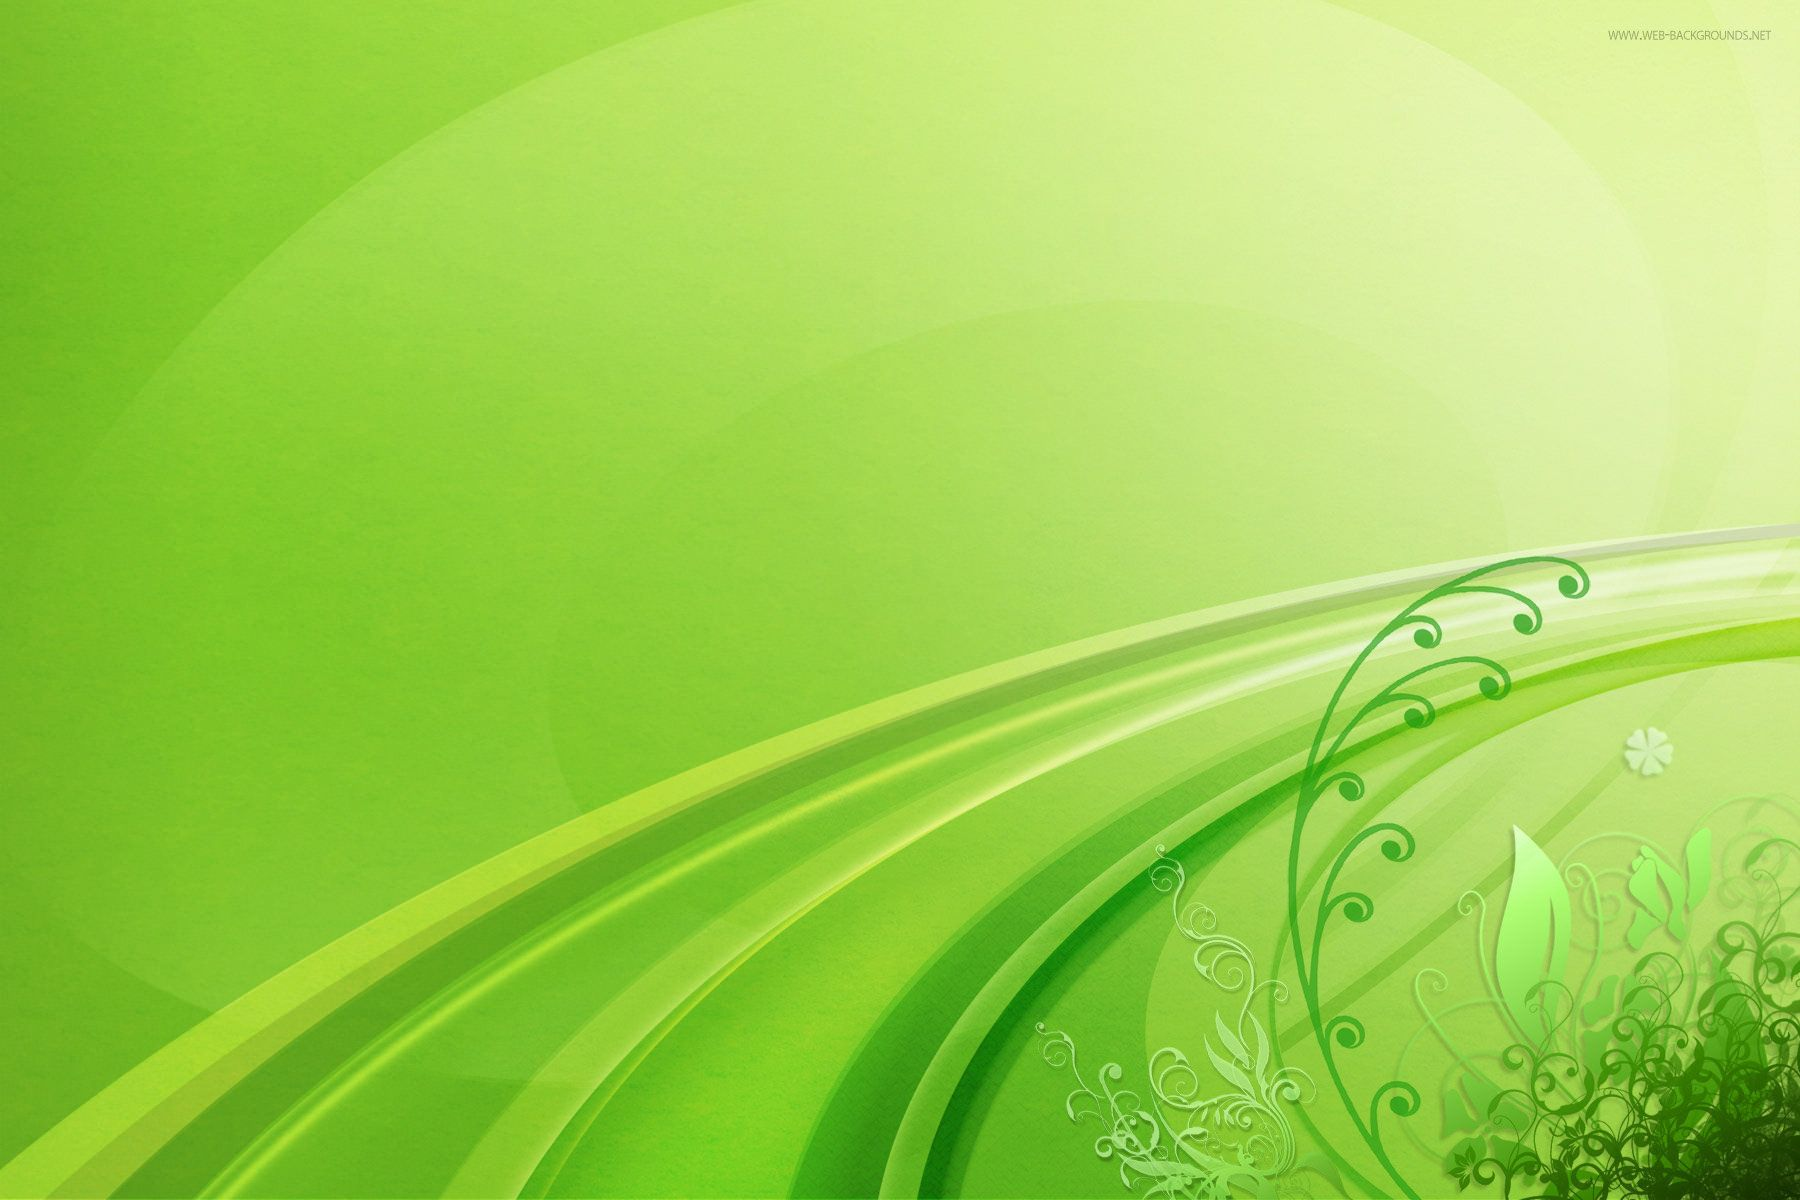 Abstract Green Floral Background Jpg 1800 1200 Backgrounds